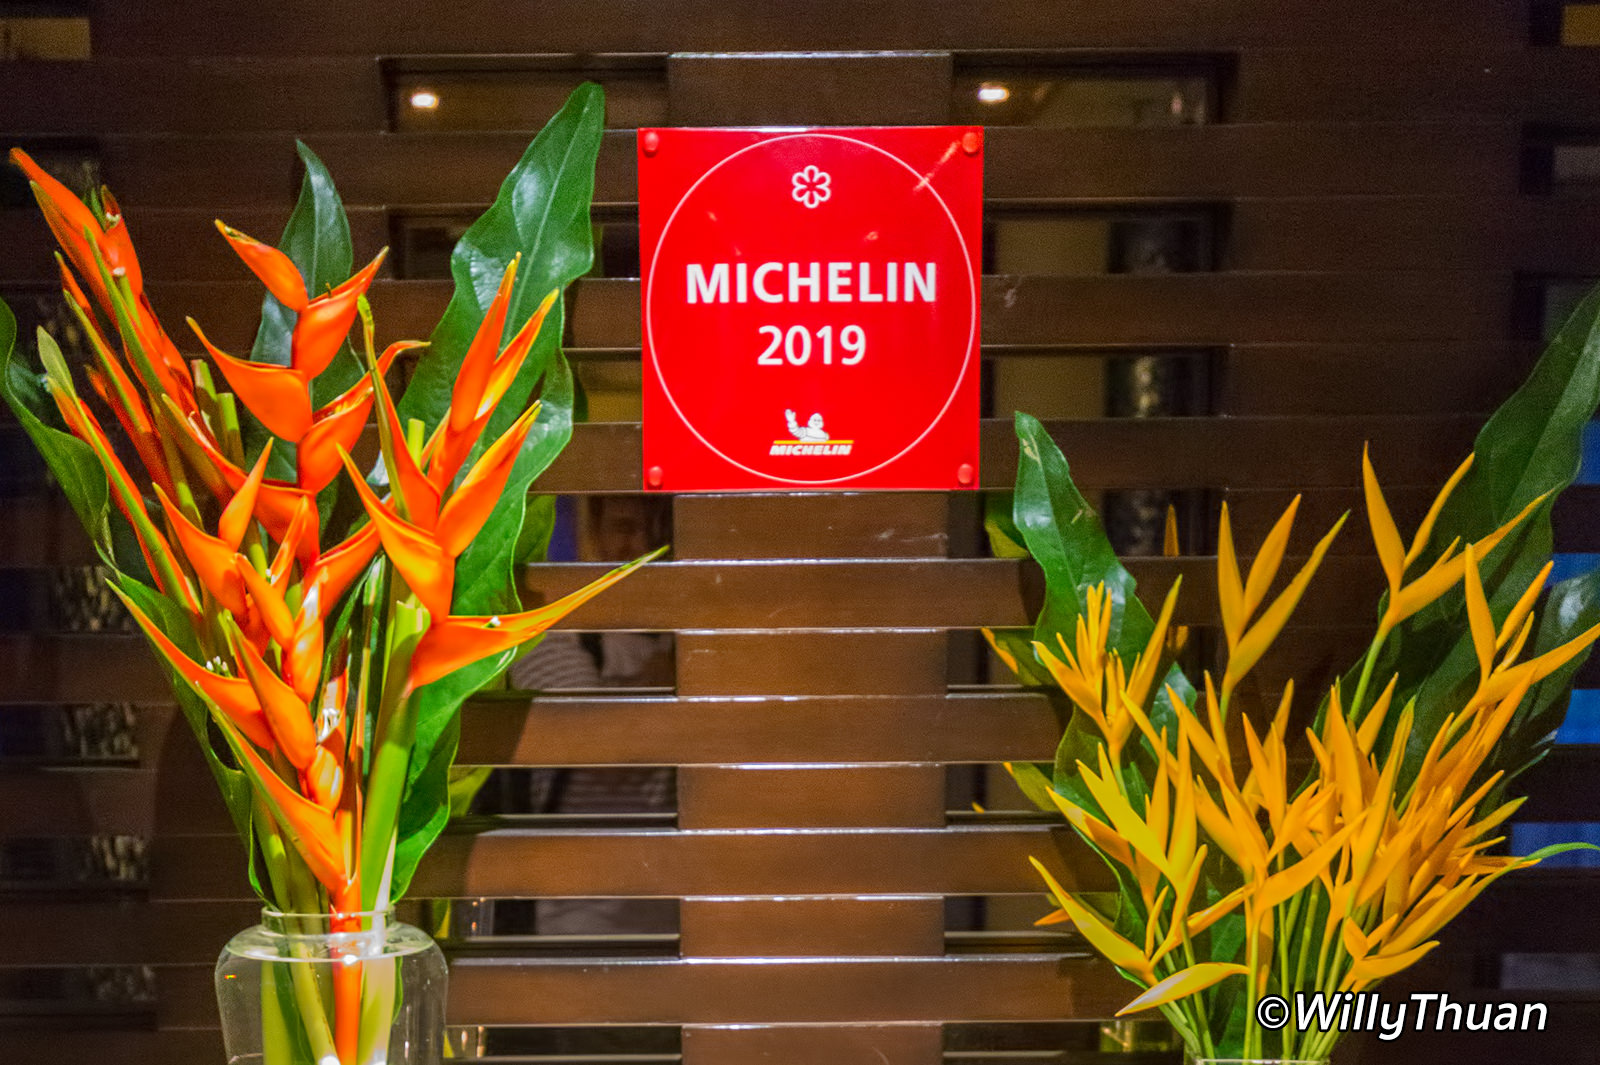 Michelin Restaurants in Phuket: 1 Star Michelin at Pru at Trisara Phuket